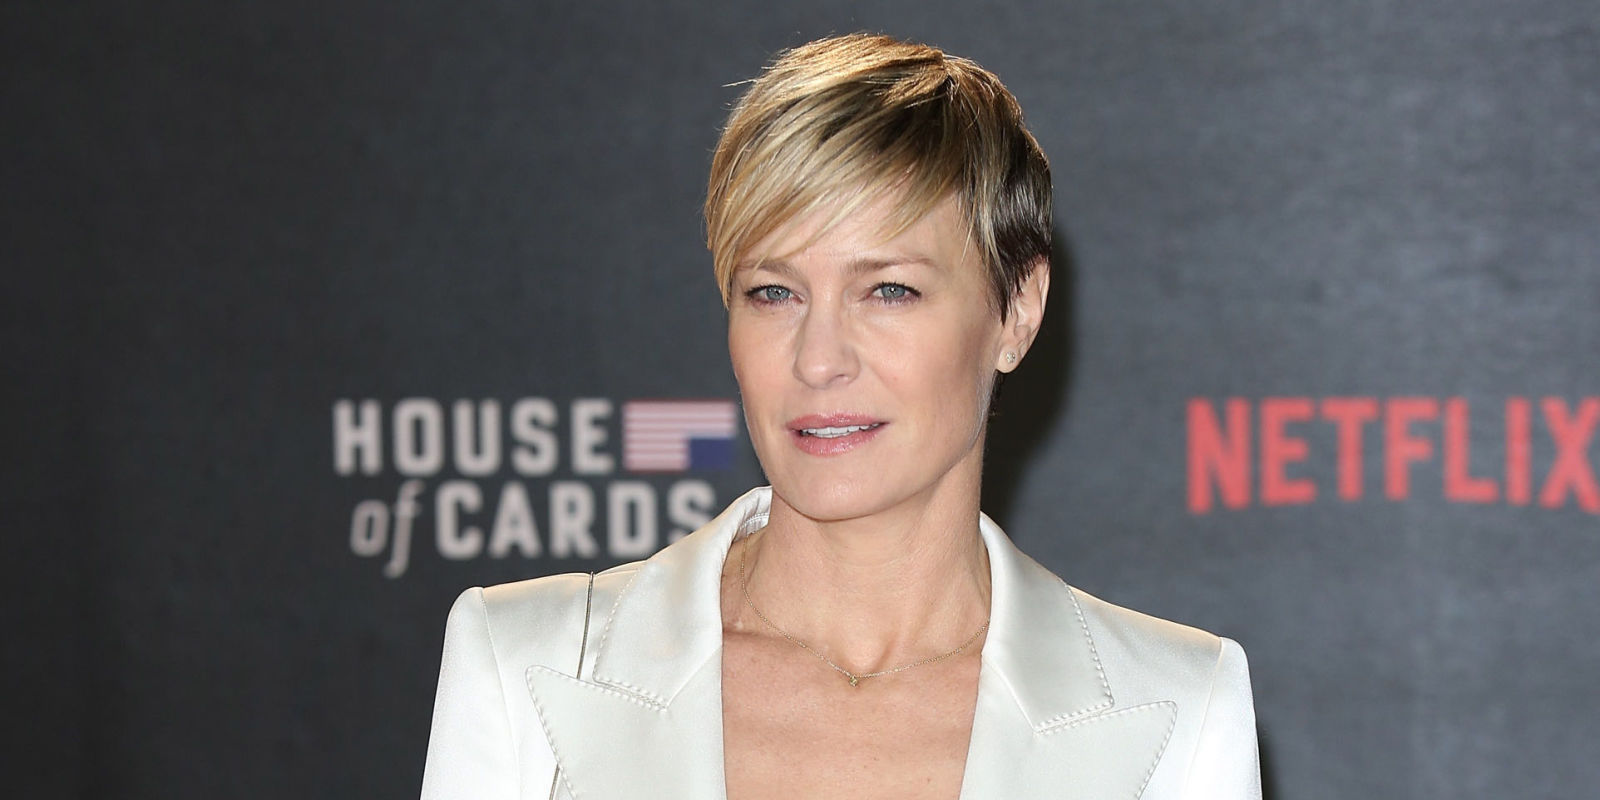 Zaria forman house of cards